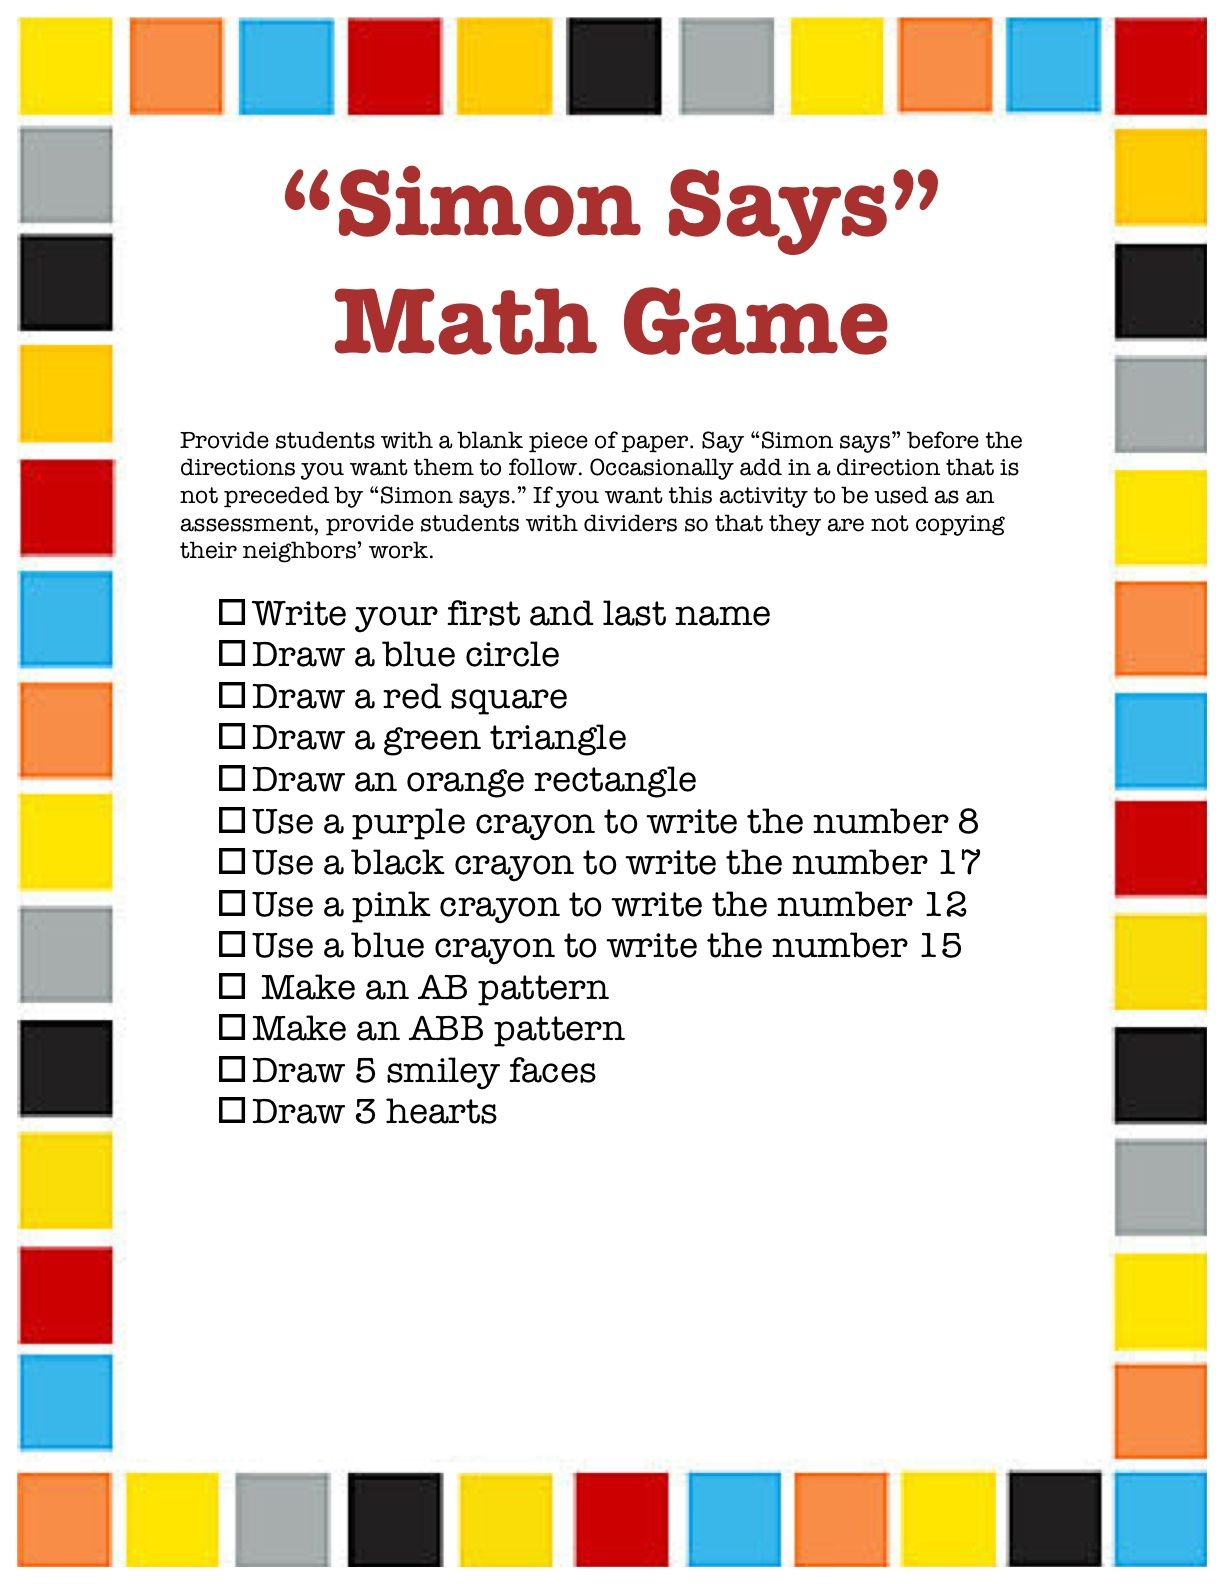 Simon Says Math Game